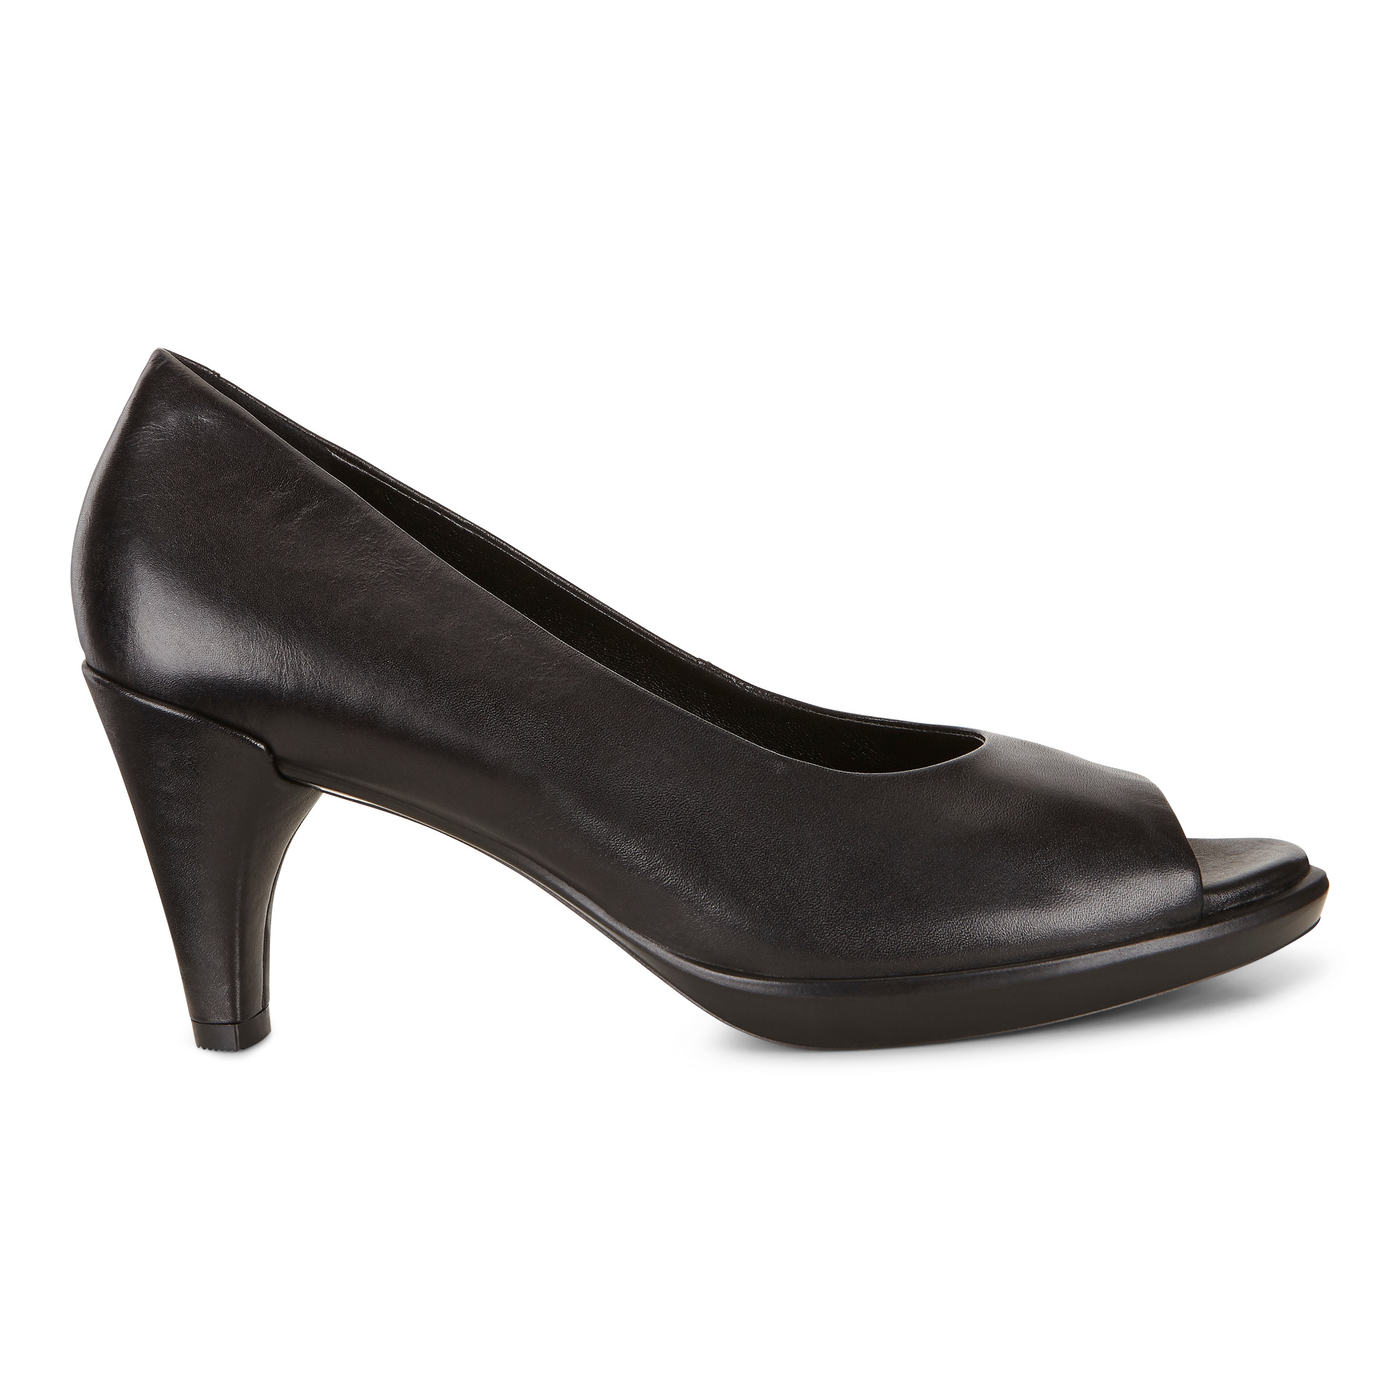 ECCO SHAPE 55 Peep Toe Sleek Pump